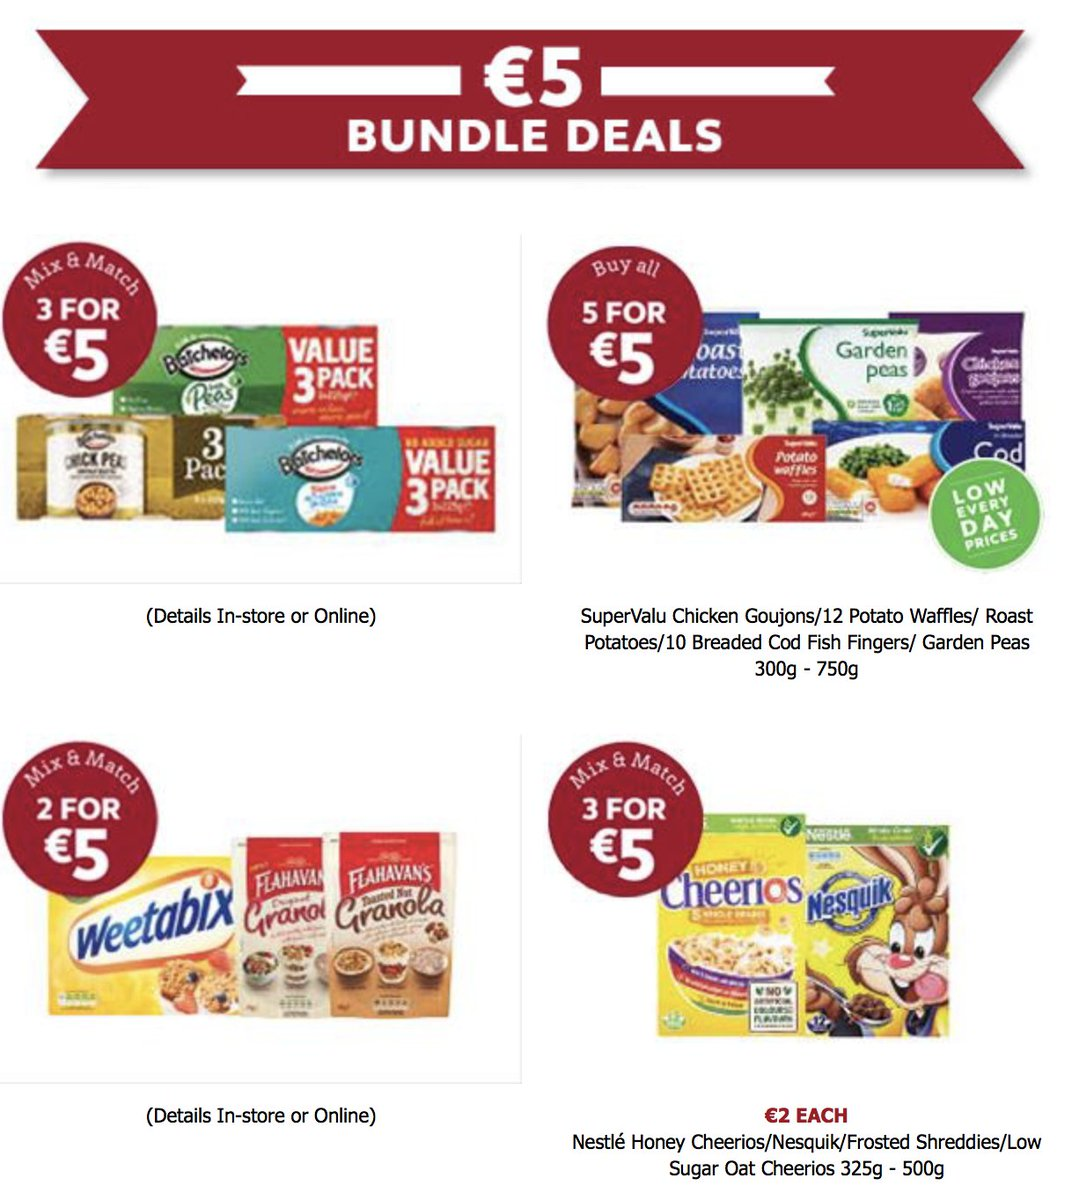 Our new €5 bundle deals are now on.... https://t.co/6sK0AJePsV